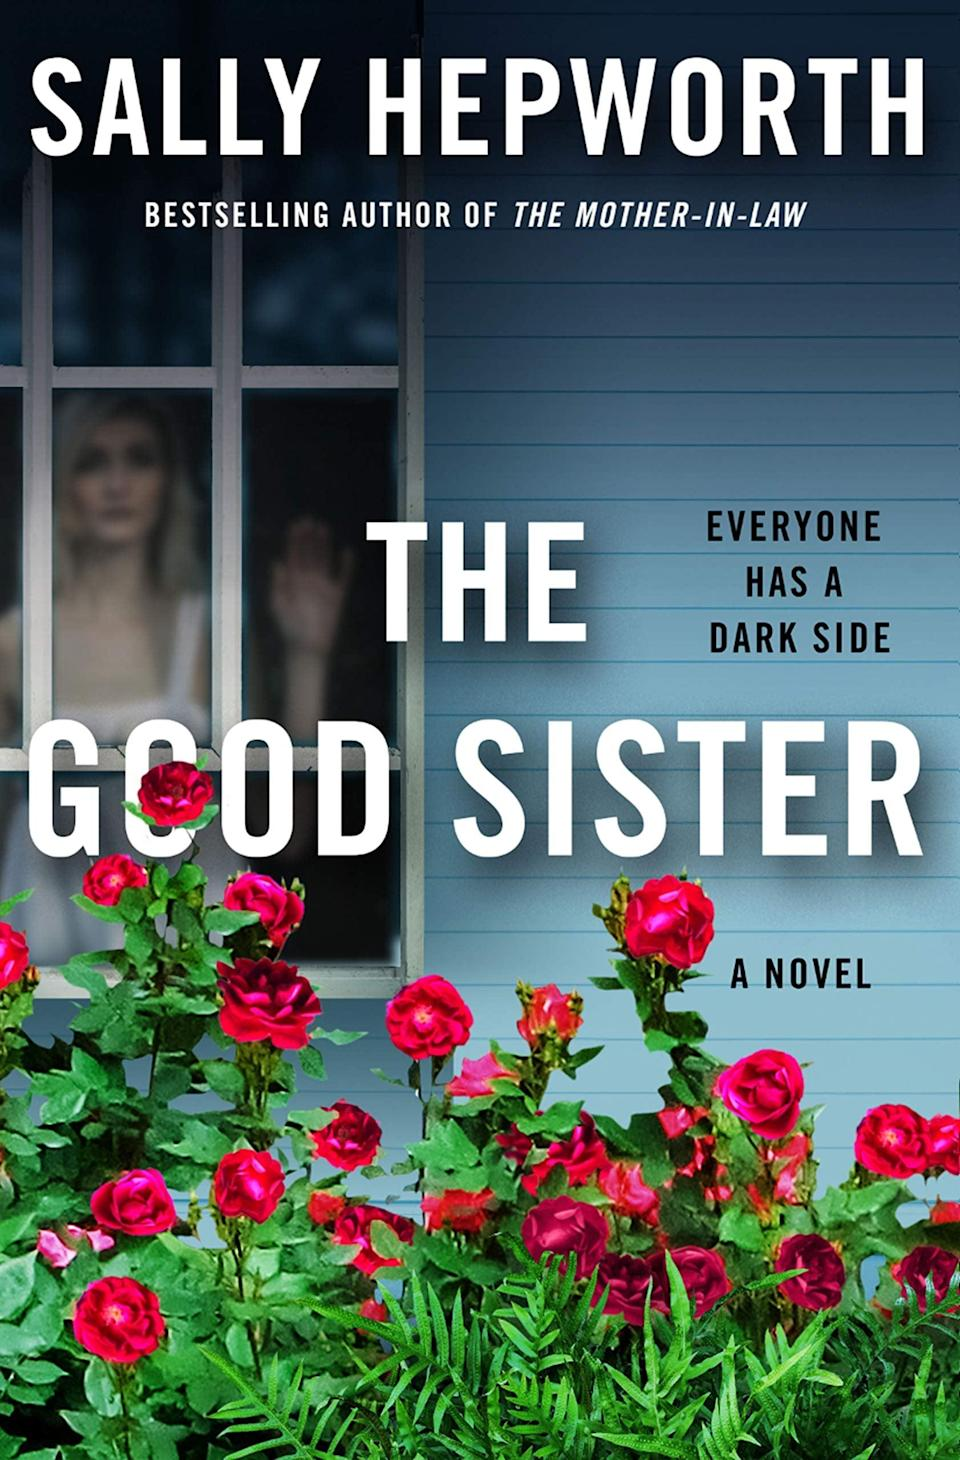 <p><span><strong>The Good Sister</strong></span> by Sally Hepworth follows twin sisters Rose and Fern, whose bond seems unshakable. The strong and steady Rose has been protecting her big-hearted sister since they were children, but when Fern commits to helping her sister achieve her dream of becoming a mother, the twins will be forced to confront secrets from their past they would rather keep buried. </p> <p><em>Out April 13</em></p>